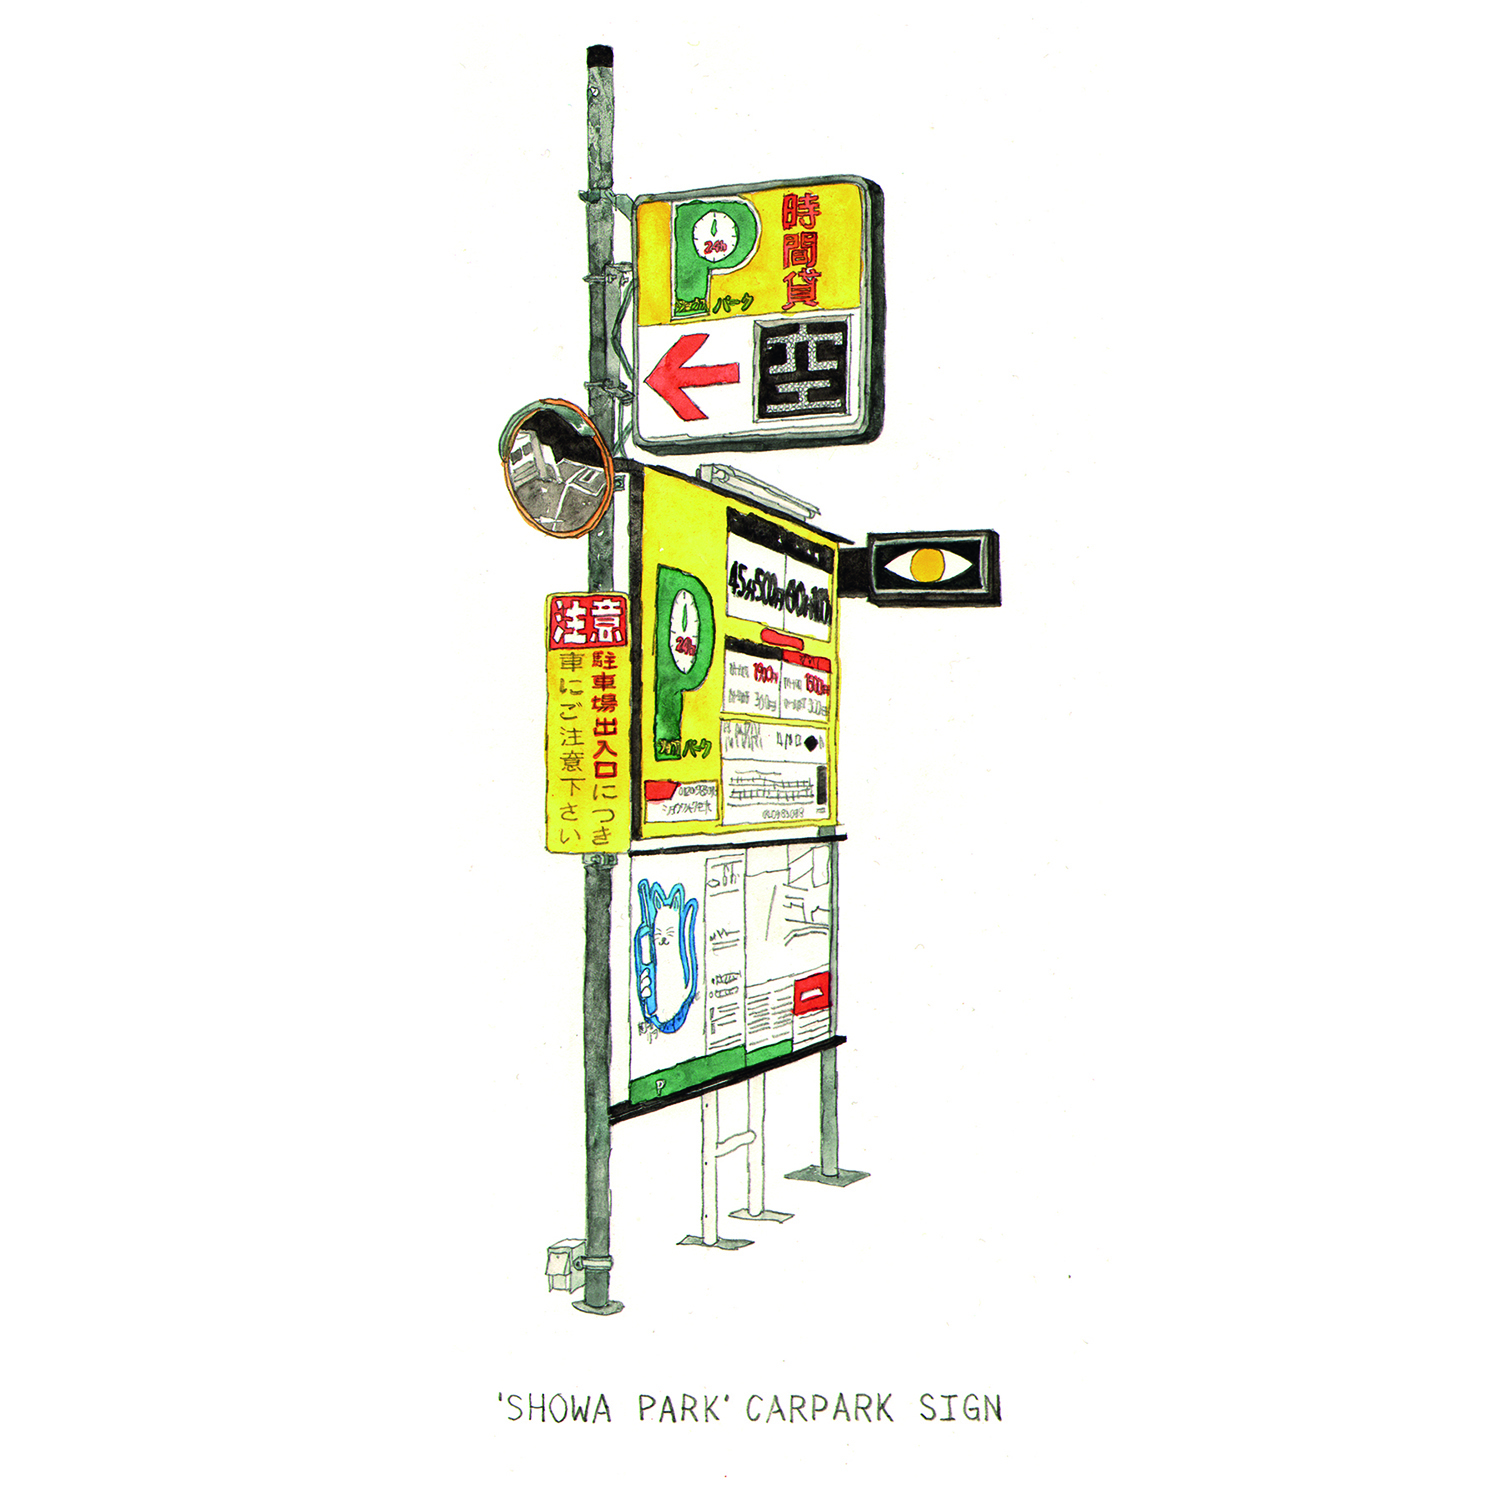 japan carpark sign drawing 1.jpg